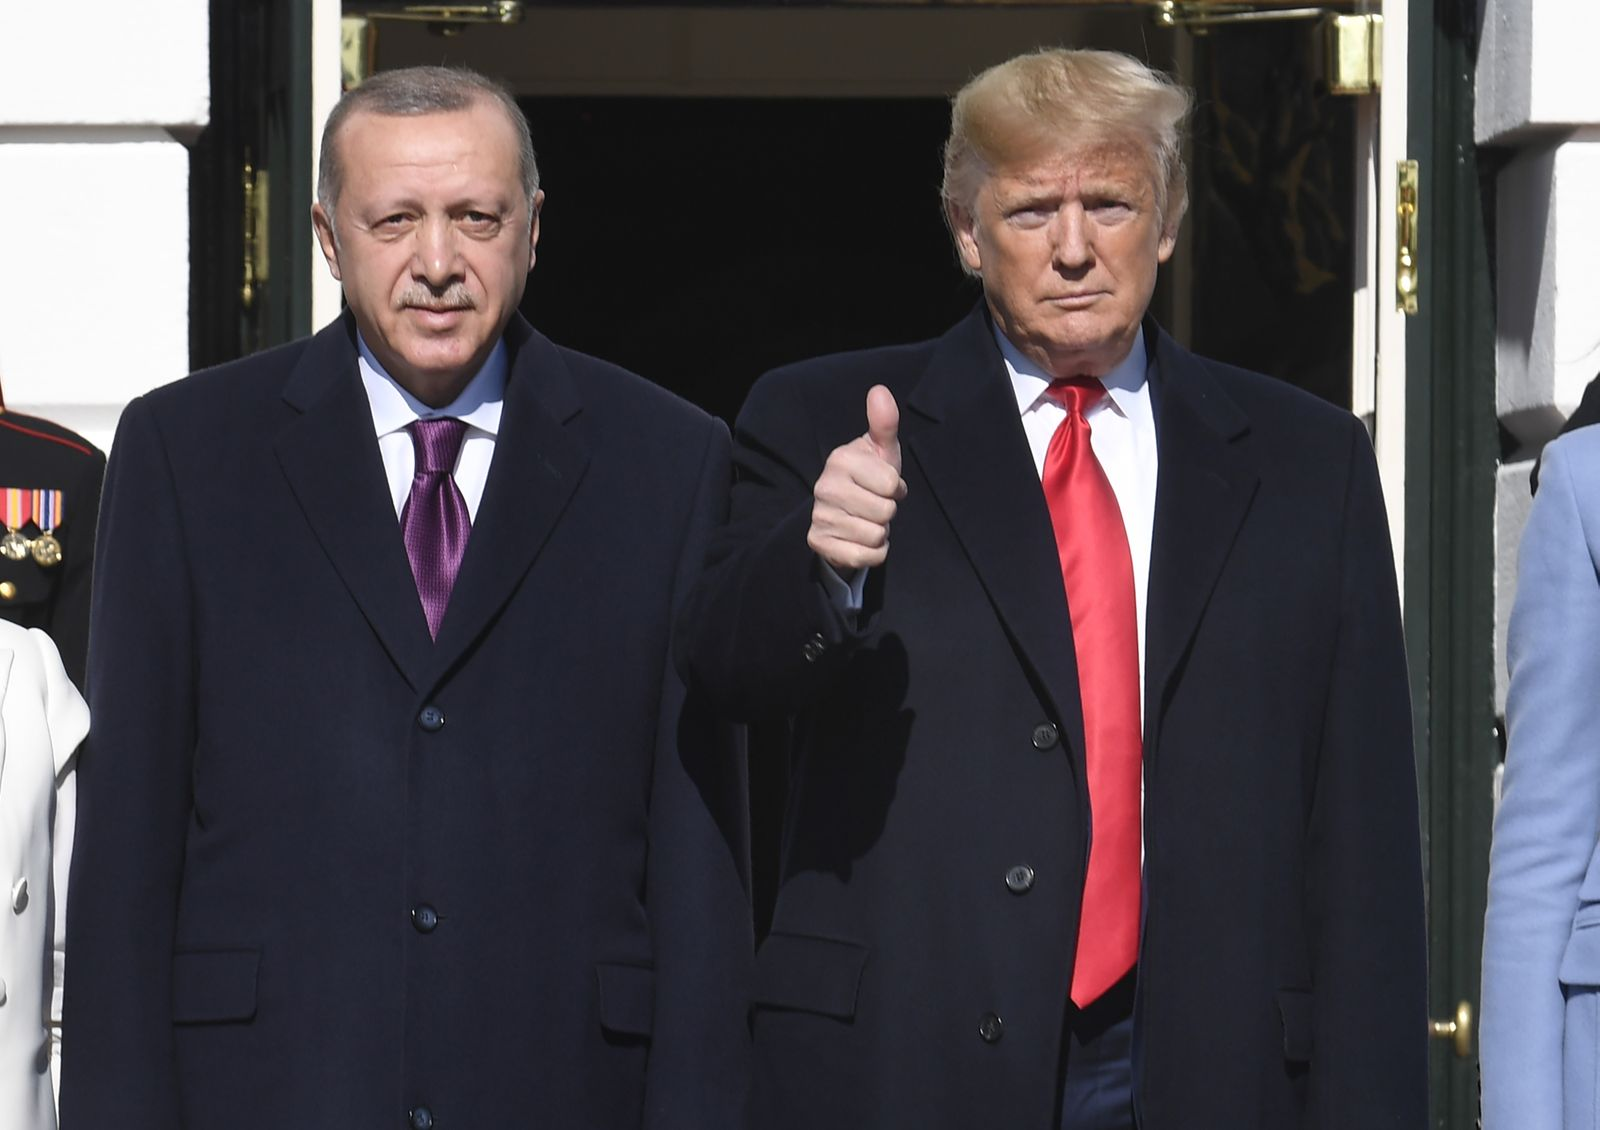 News Themen der Woche KW46 News Bilder des Tages President Donald Trump (R) gives a thumbs up to the press as he welcome